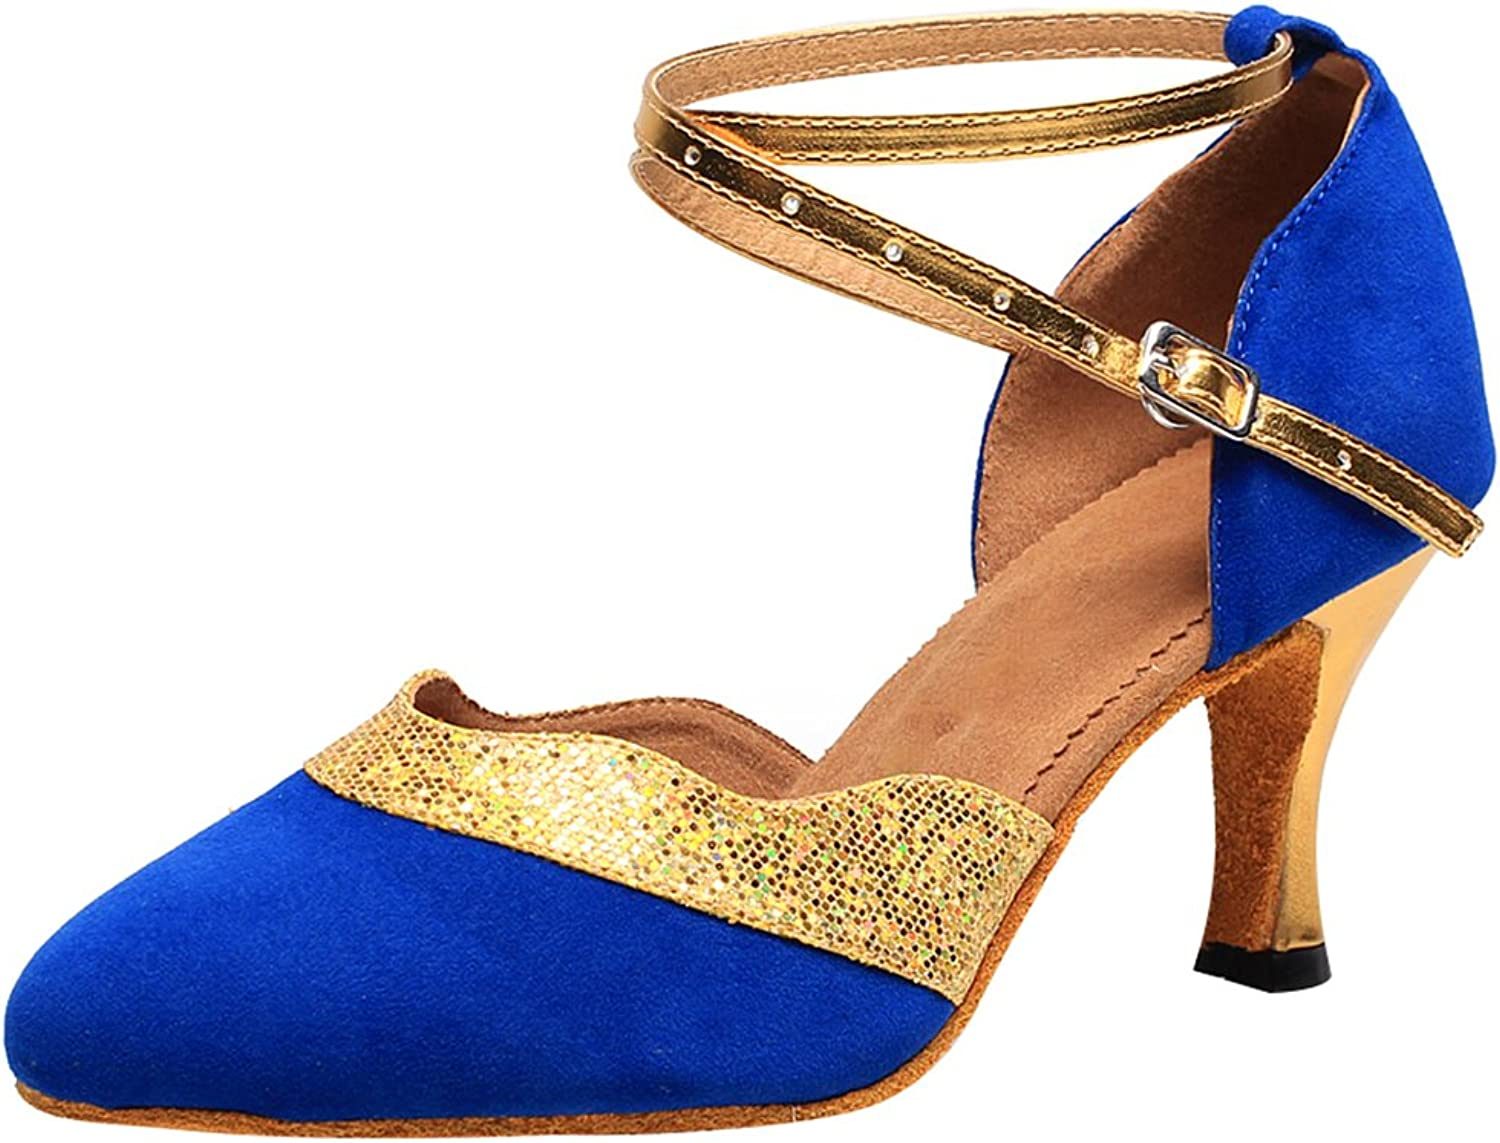 ABBY Products Womens Practice Latin Professional Dance shoes 2 in Closed Toe Ankle Strap 7119 bluee(2.4IN) US Size7.5